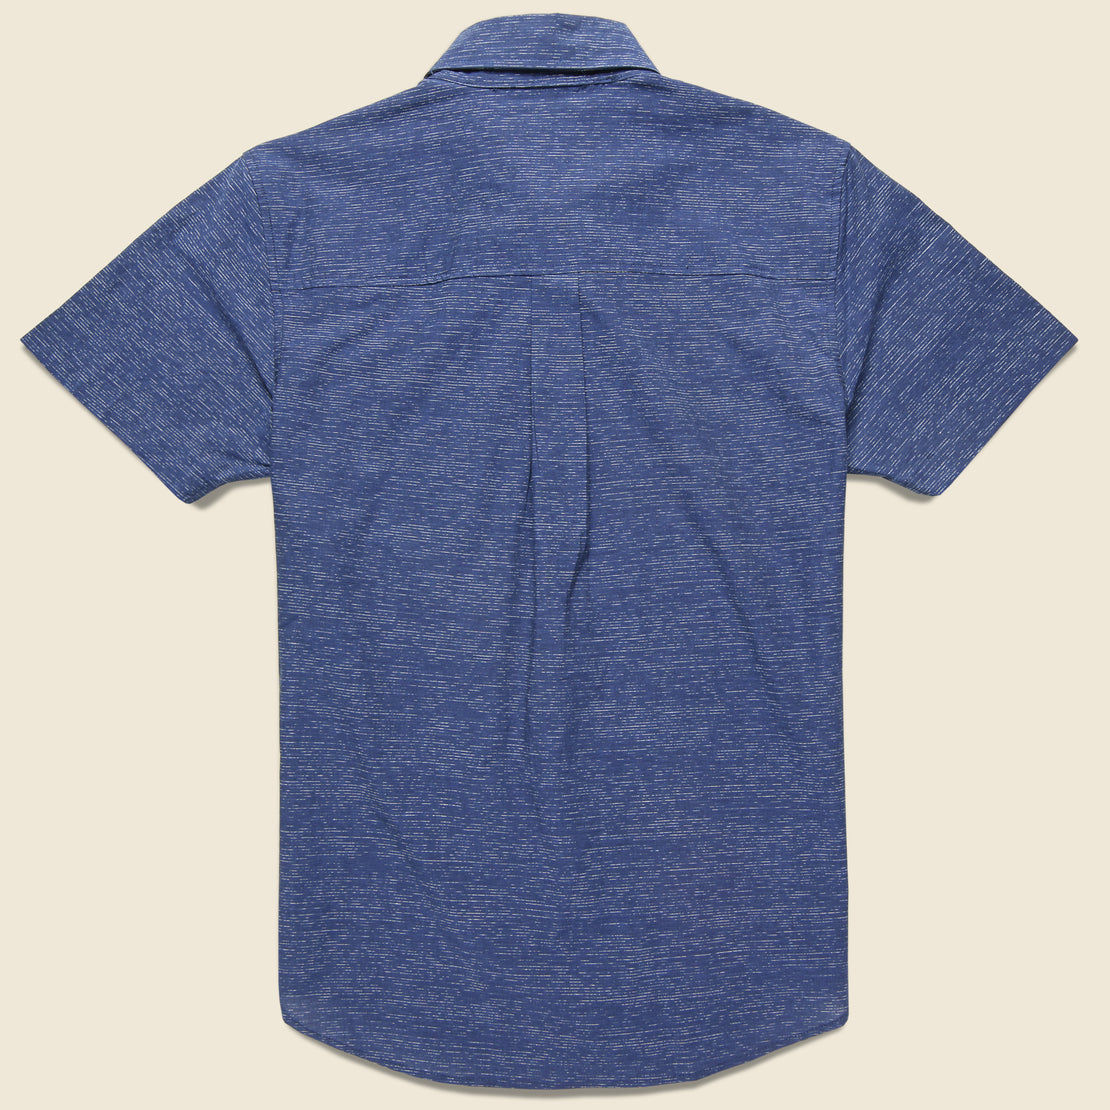 Harbor Shirt - Navy Slub